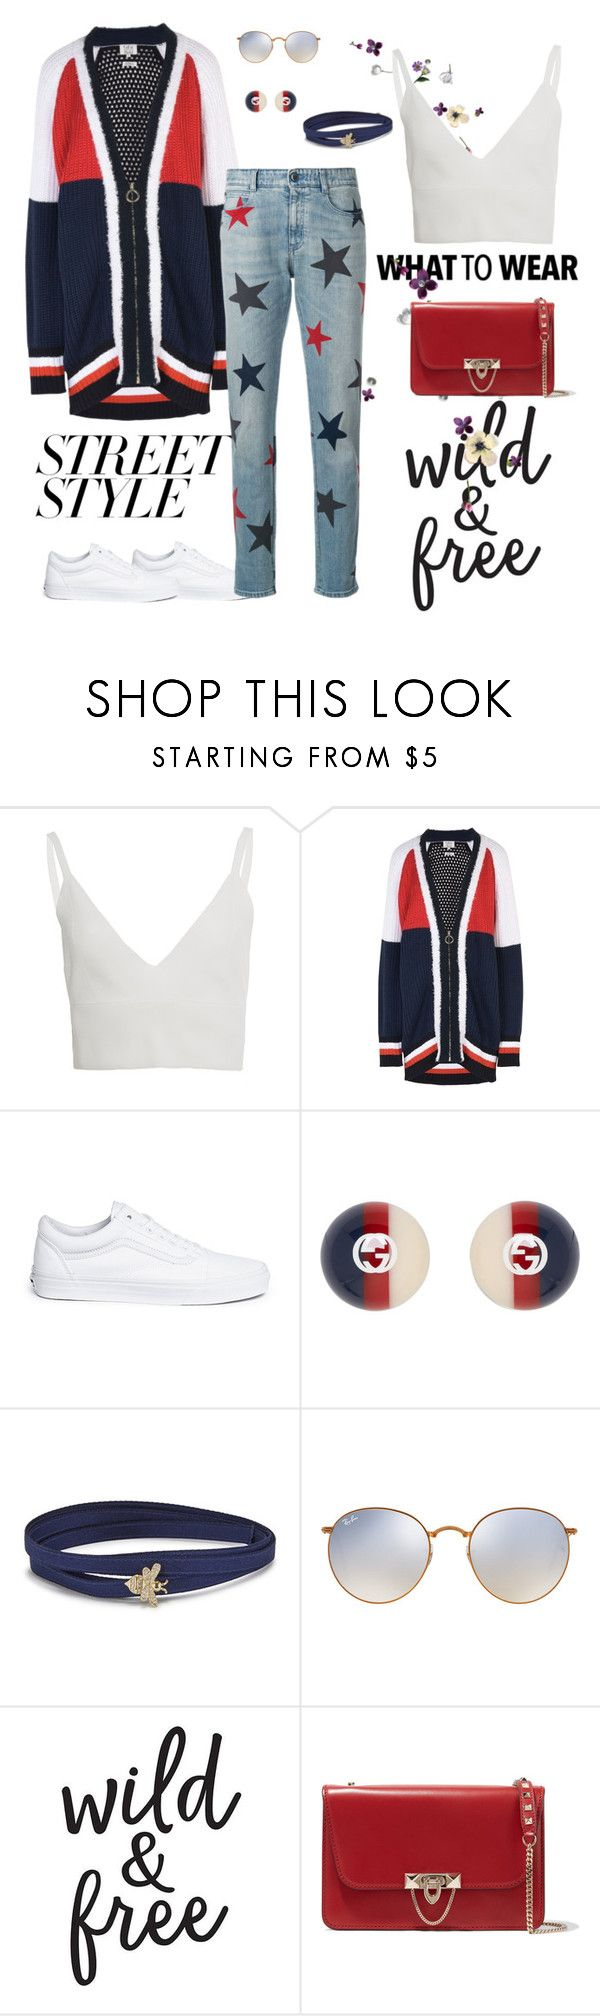 """""""What to wear~ street style ⚡️"""" by letiziacatalini-28 ❤ liked on Polyvore featuring Zeynep Arçay, Tommy Hilfiger, Vans, Gucci, APM Monaco, Ray-Ban, Valentino and STELLA McCARTNEY"""